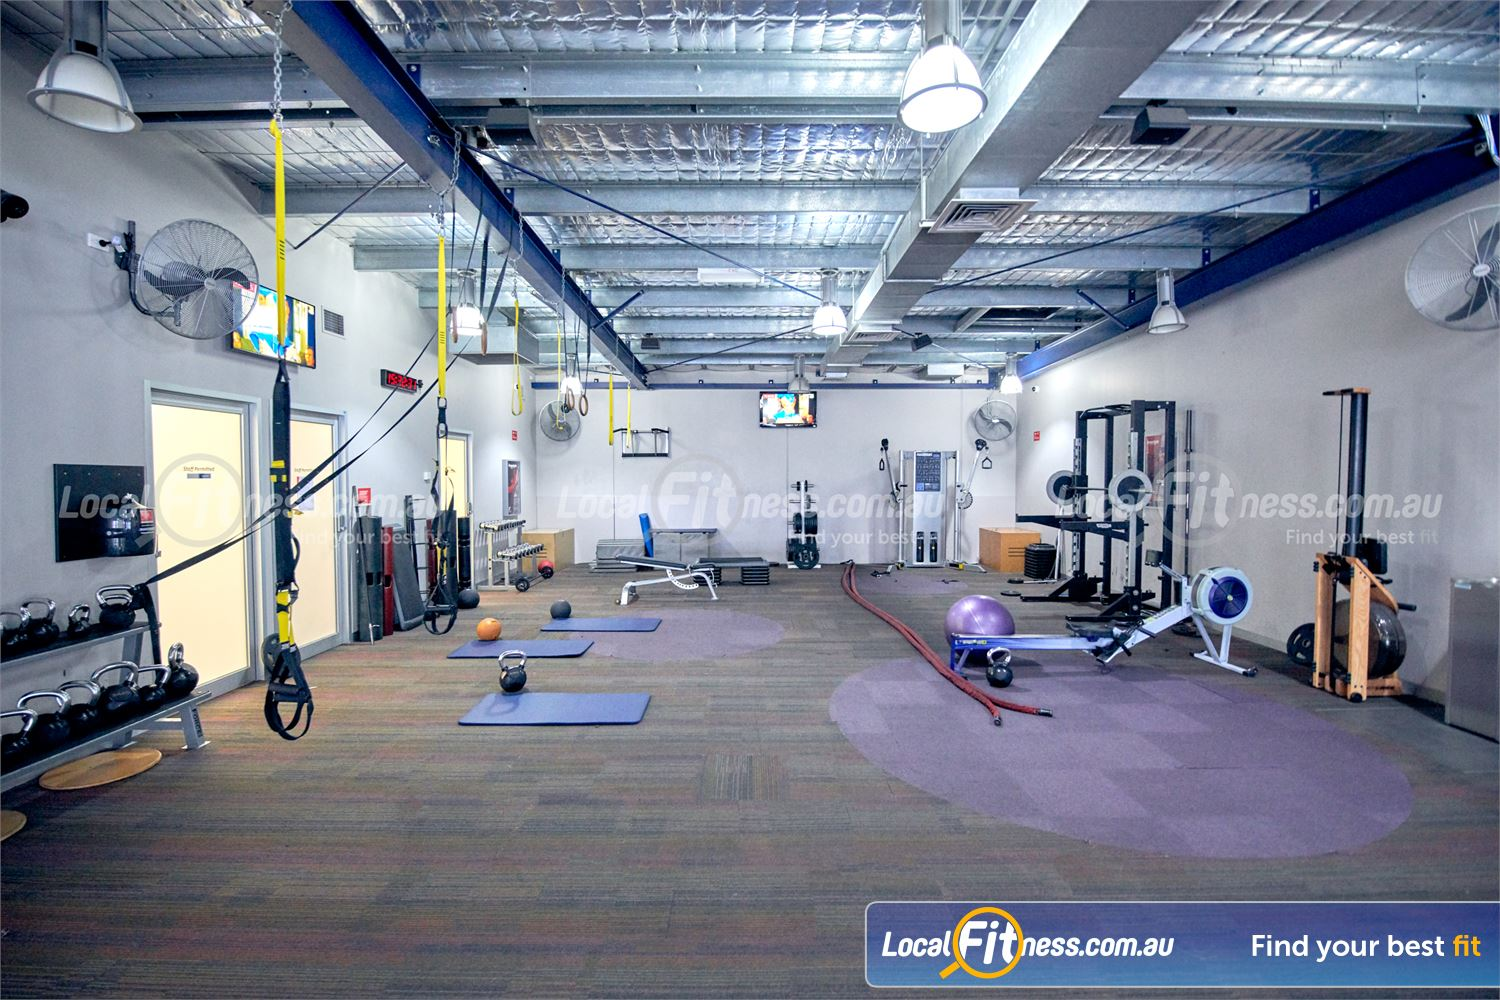 Fitness First Malvern Valley Near Murrumbeena Fully equipped abs and stretching area.